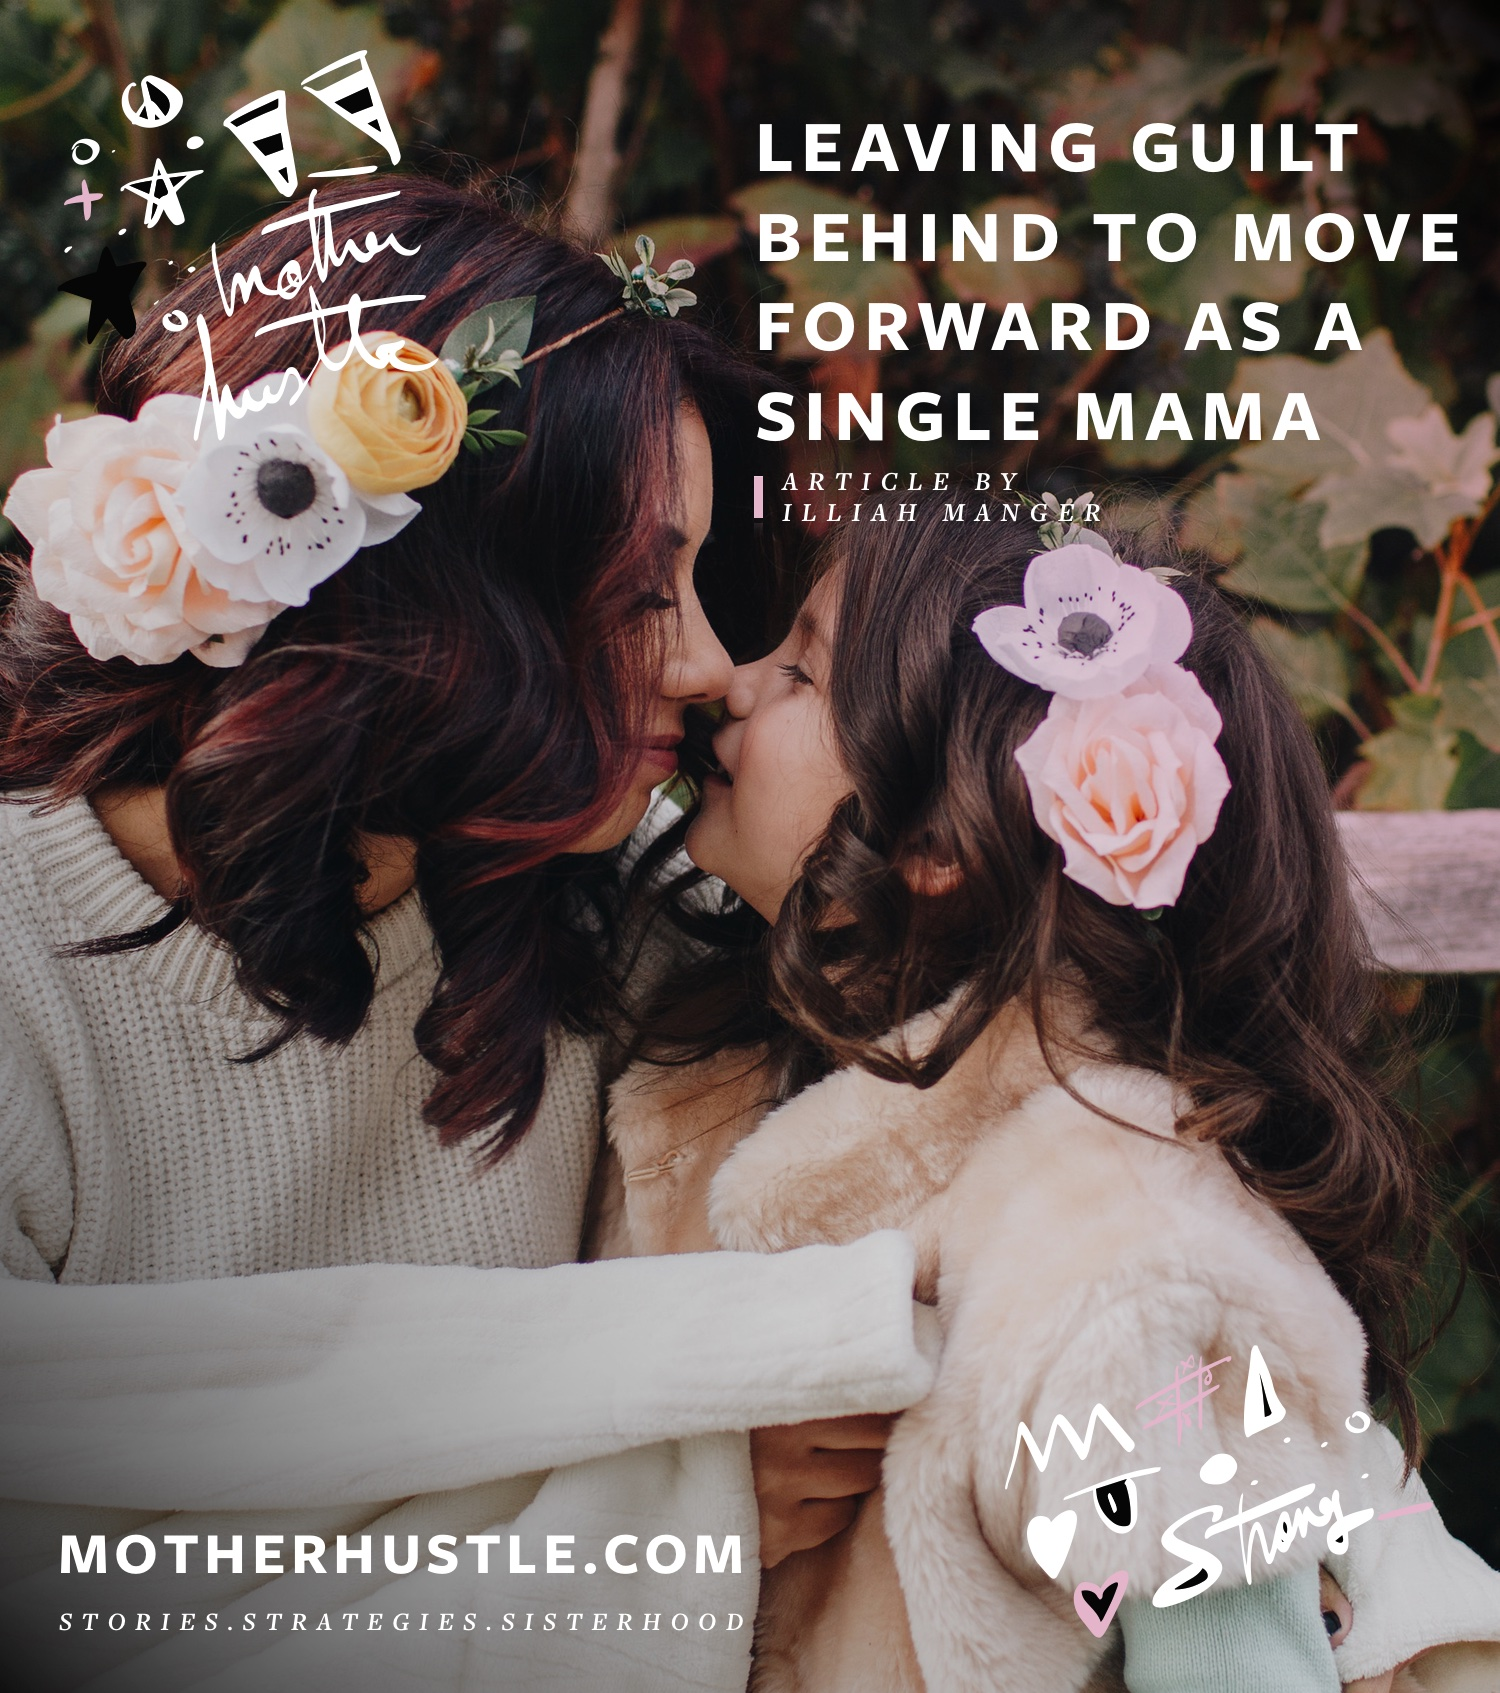 Leaving Guilt Behind to Move Forward as a Single Mama - By Illiah Manger for MotherHustle